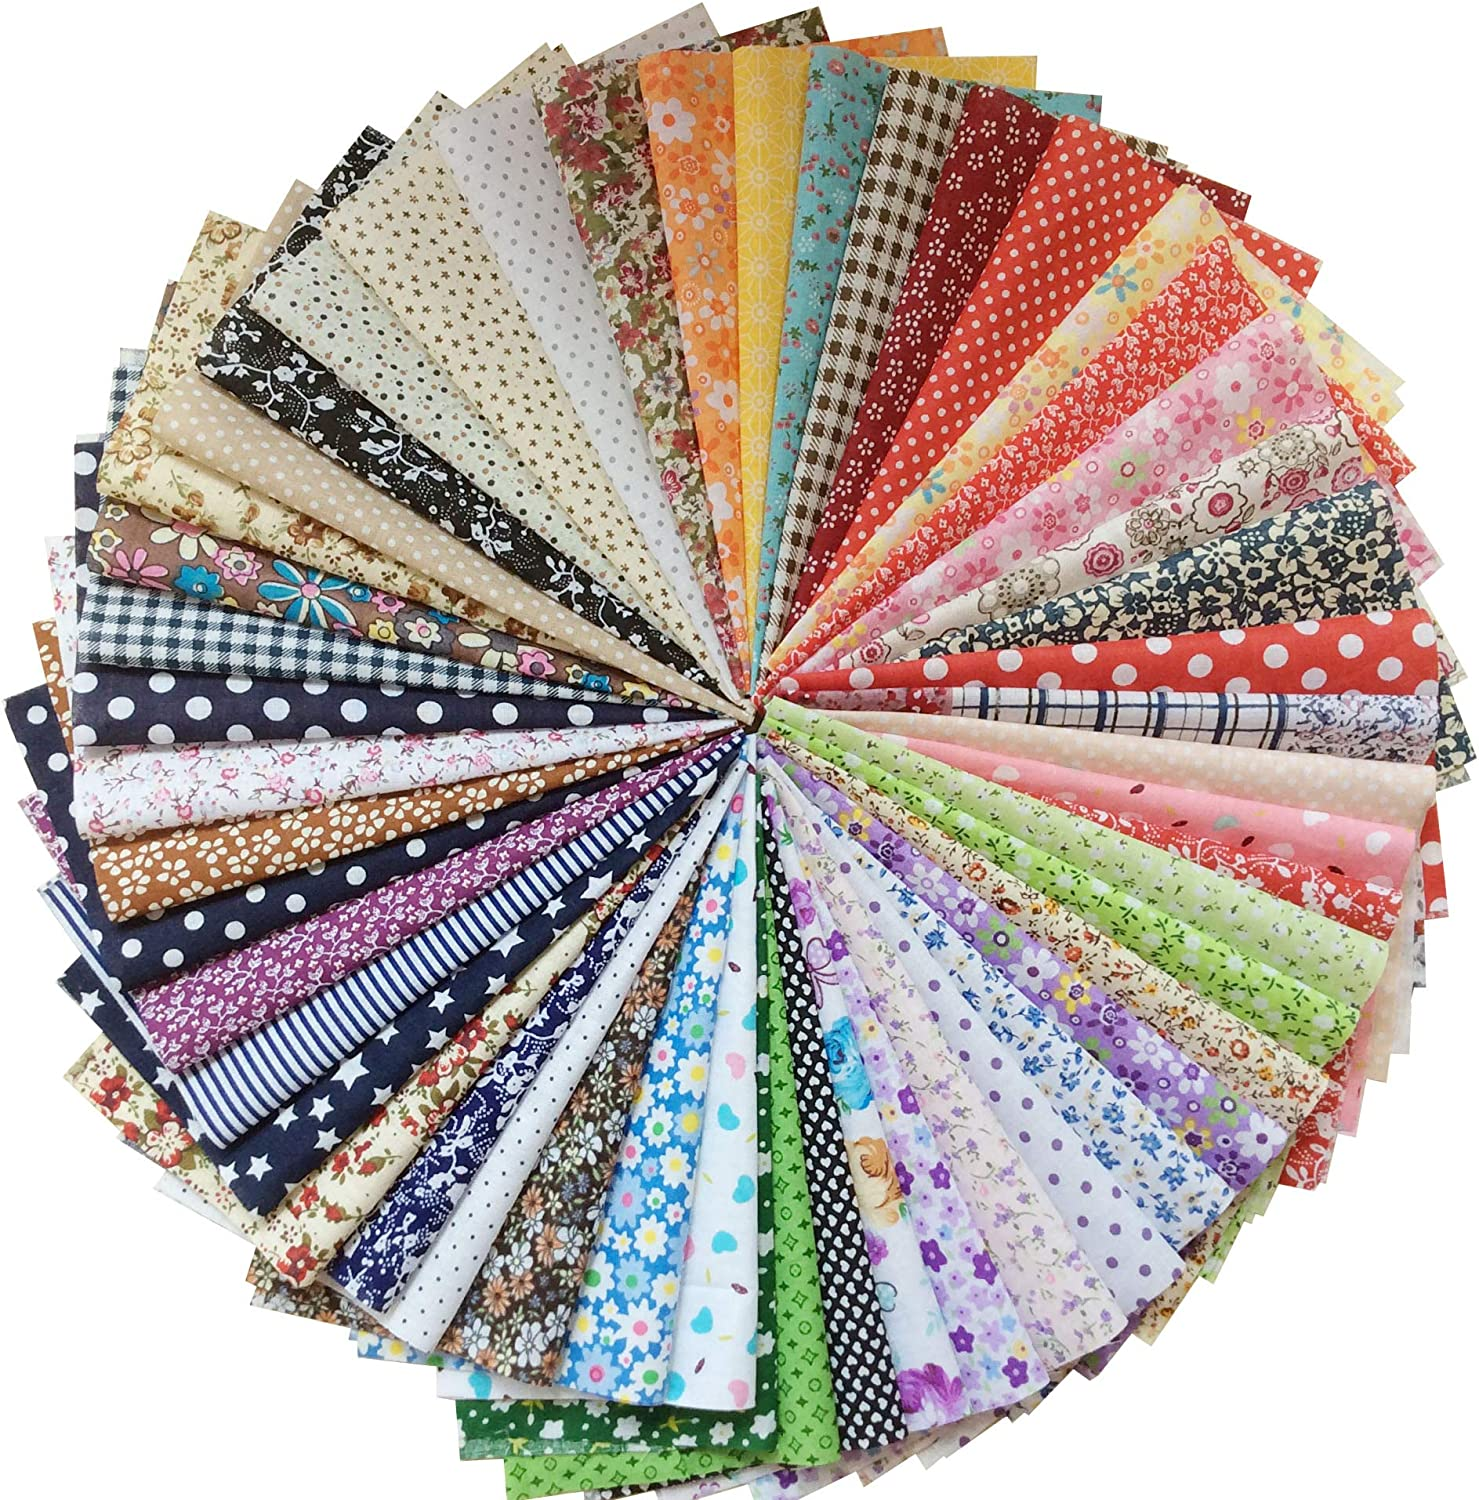 longshine-us 50pcs 8 x 8 Inch Premium Cotton Craft Fabric Bundle Squares Patchwork Lint DIY Sewing Scrapbooking Quilting Dot Pattern Artcraft